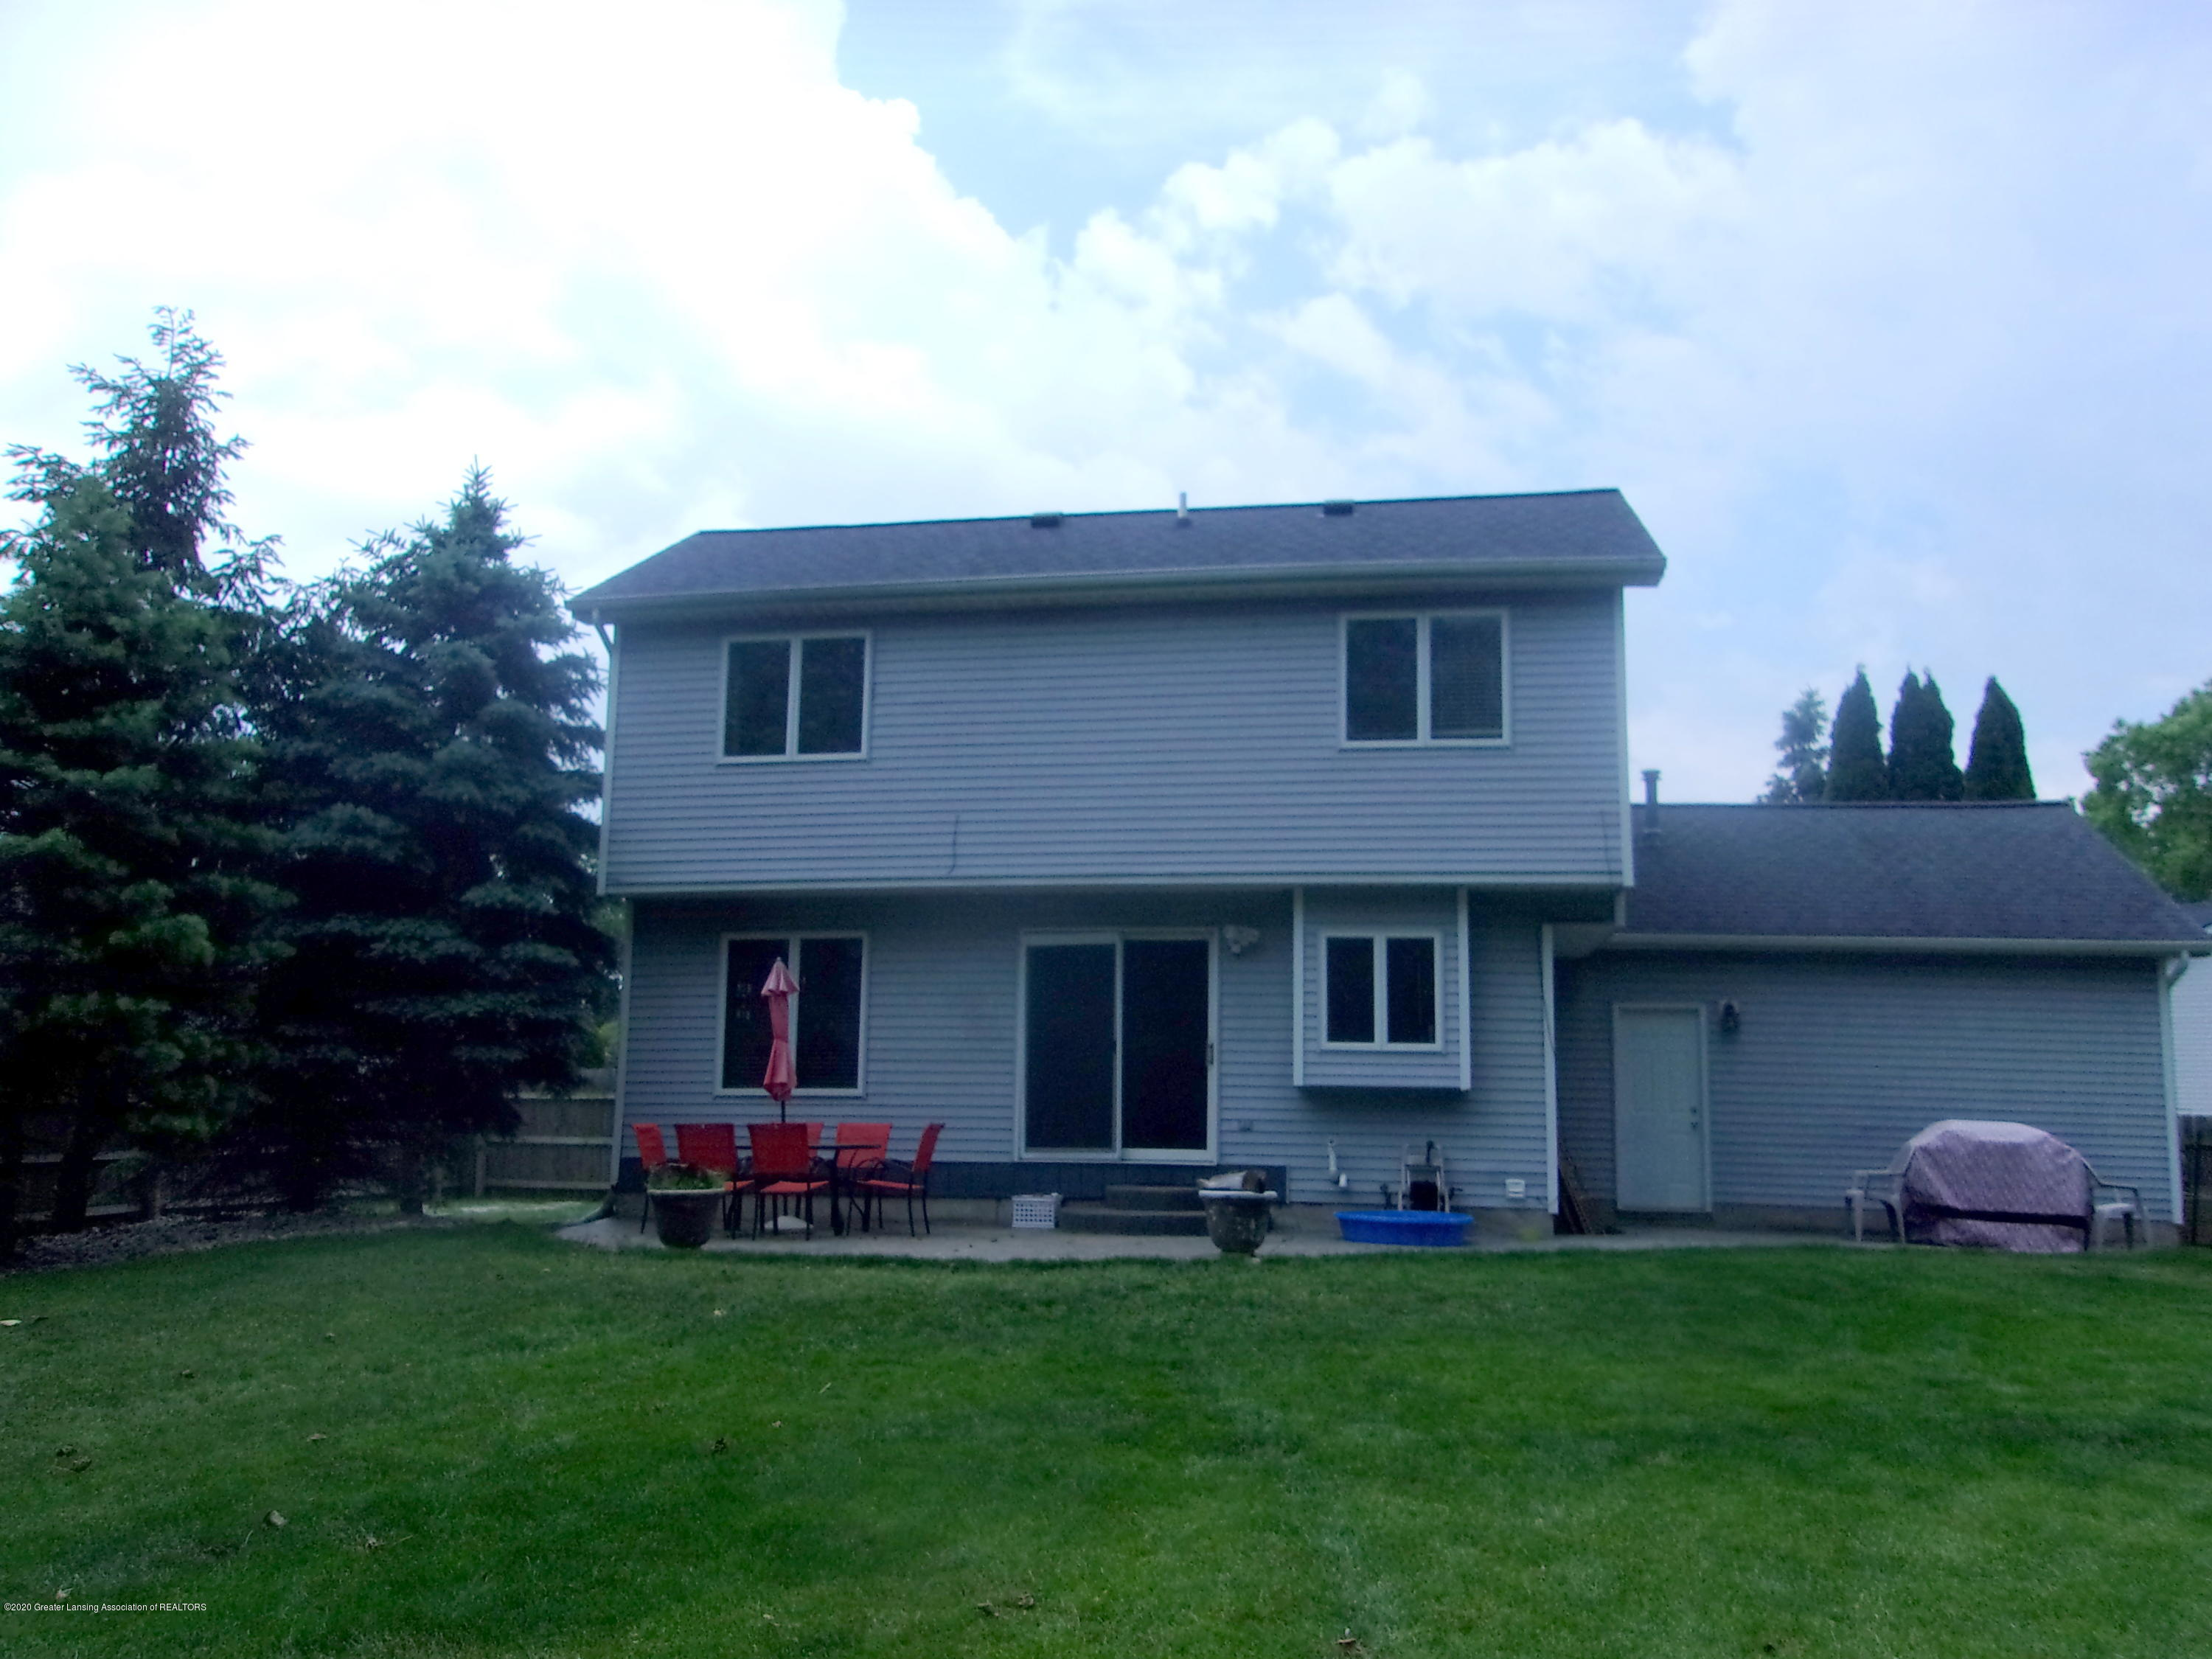 3991 Windy Heights Dr - 100_0982 2 - 7